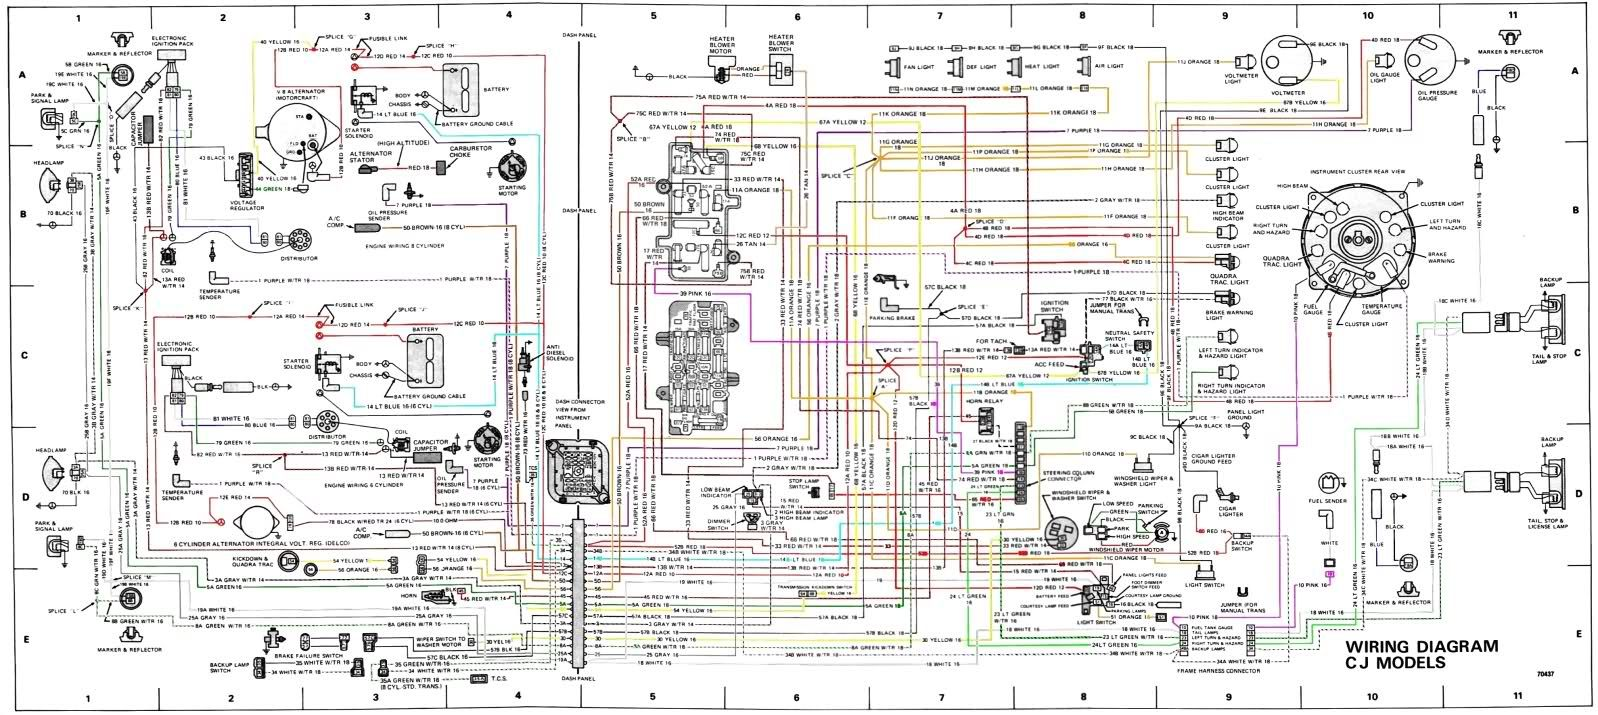 Jeep Wiring Harness Diagram List Of Schematic Circuit 66 6 Cylinder Gm Image Result For Cj7 Wire Rh Pinterest Com Cherokee Wrangler